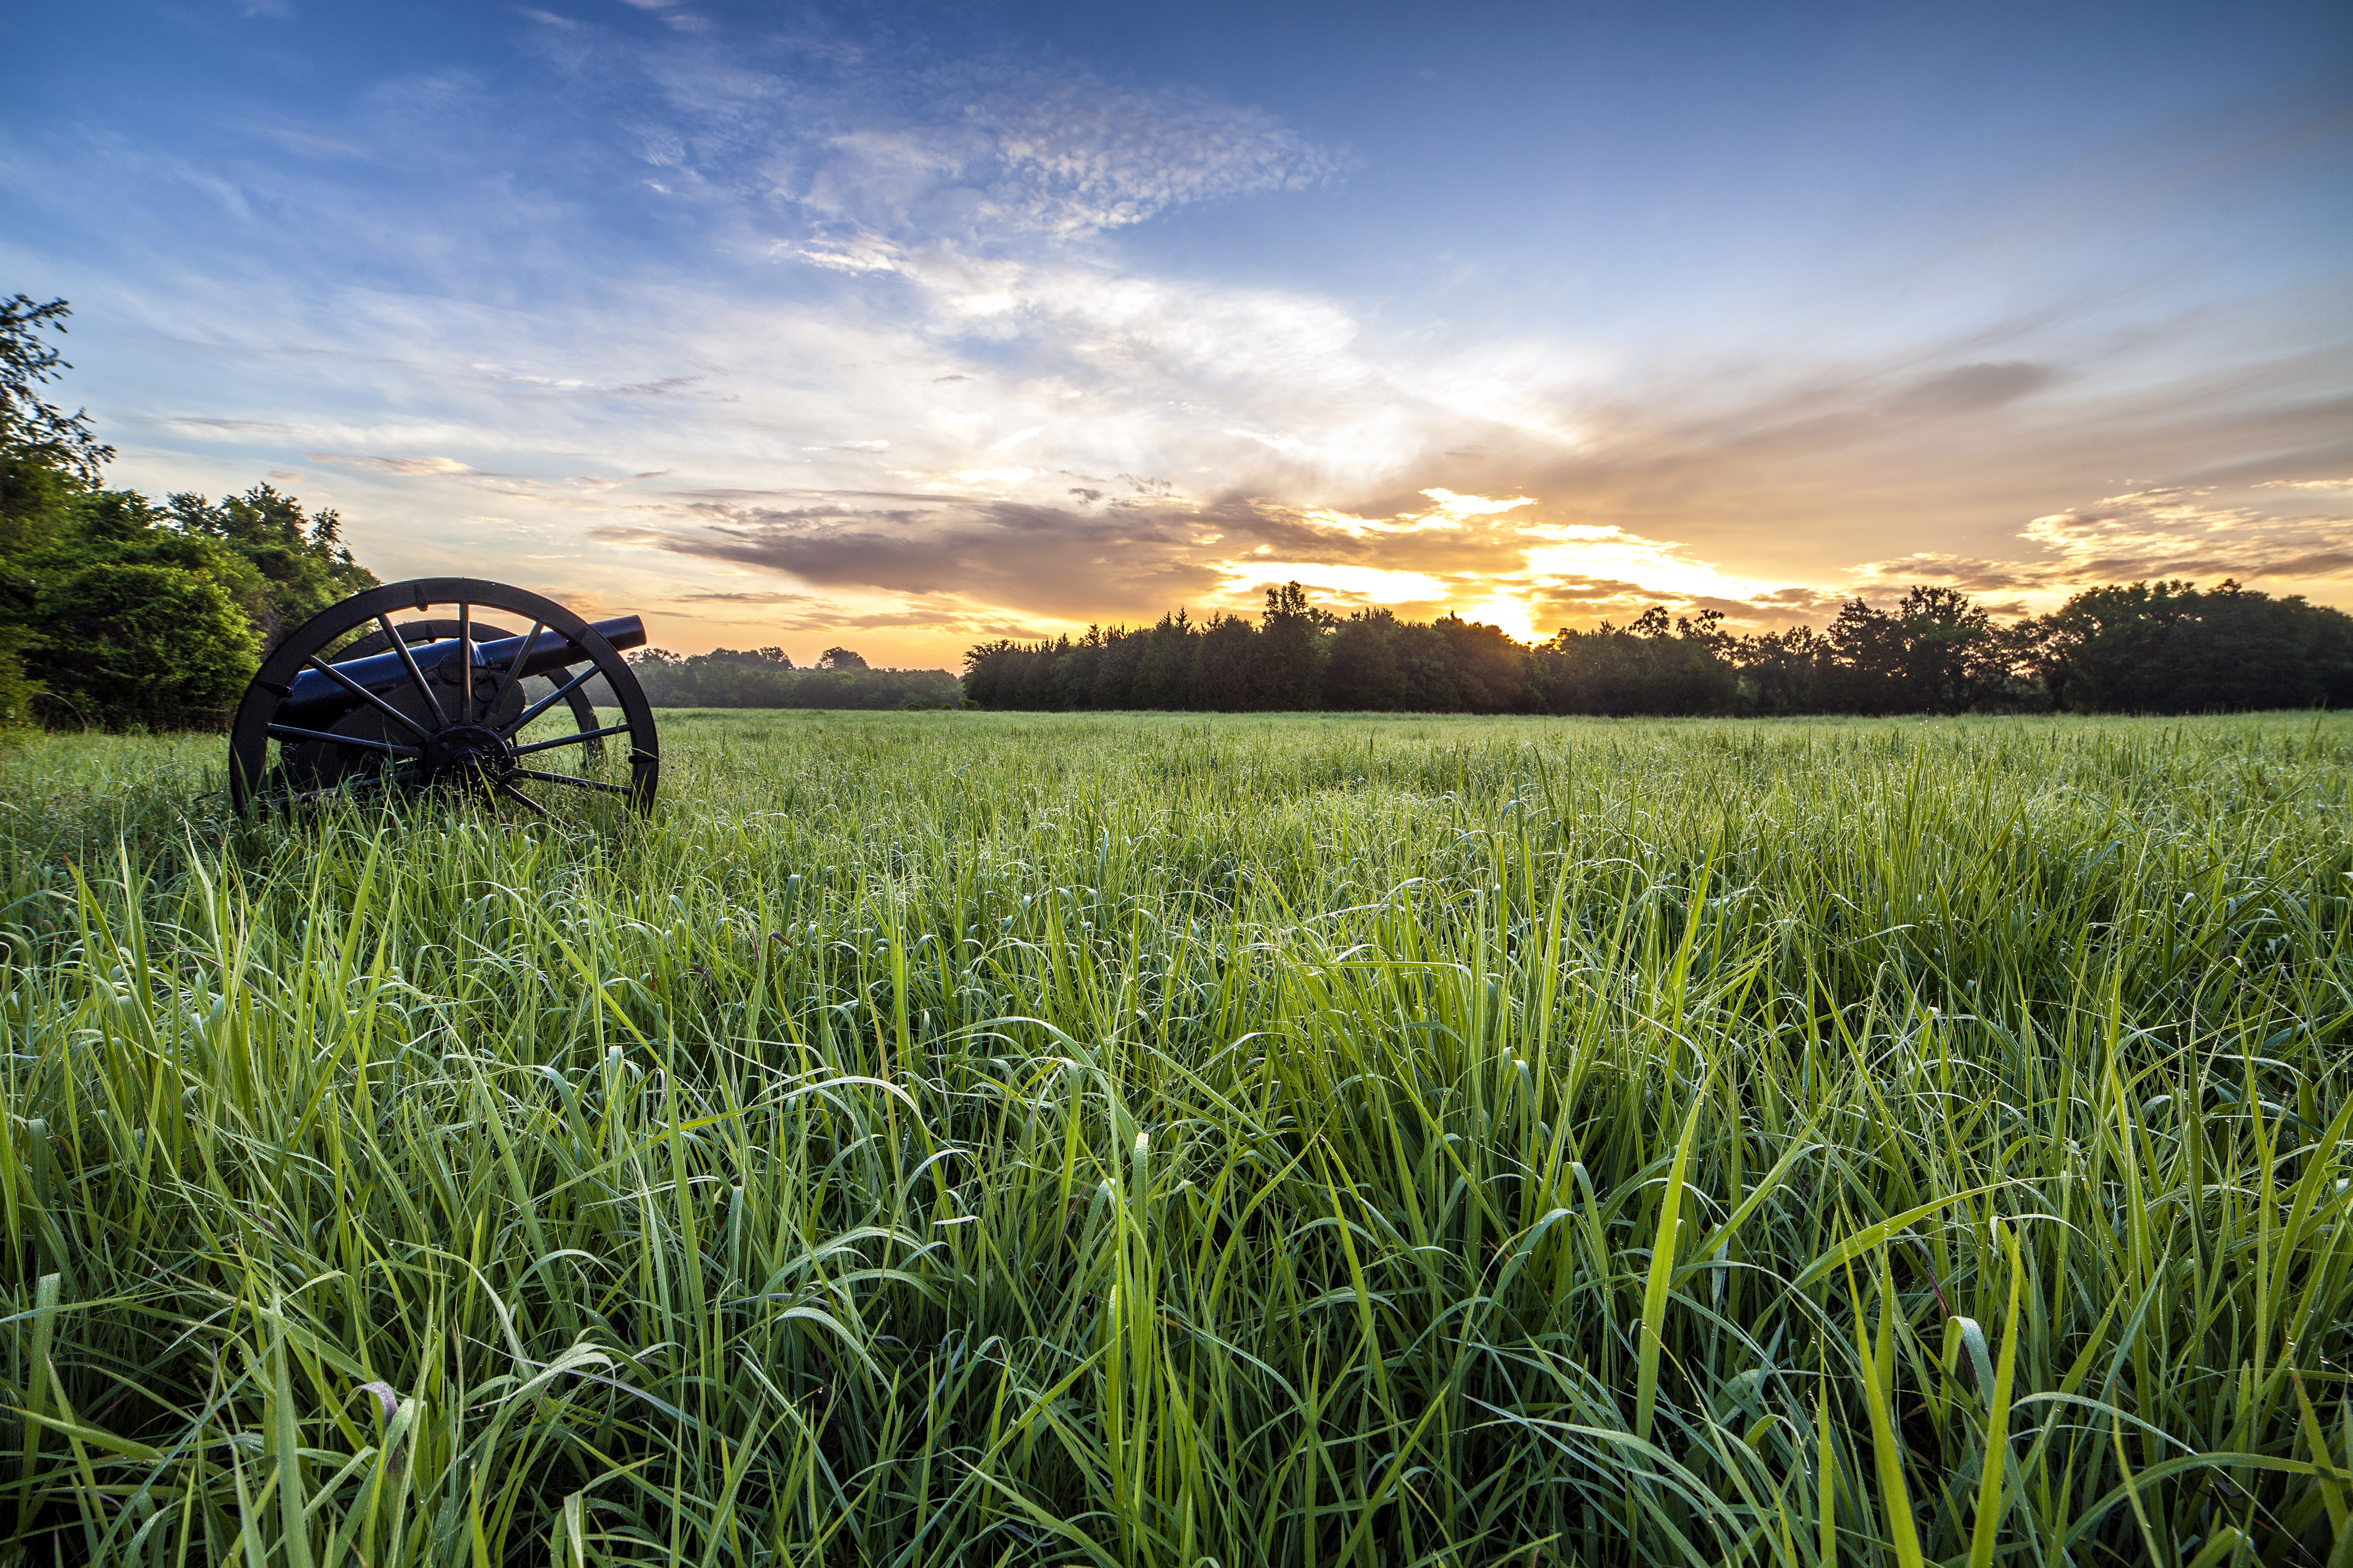 Civil war-era canon sits in a field of grass at sunset